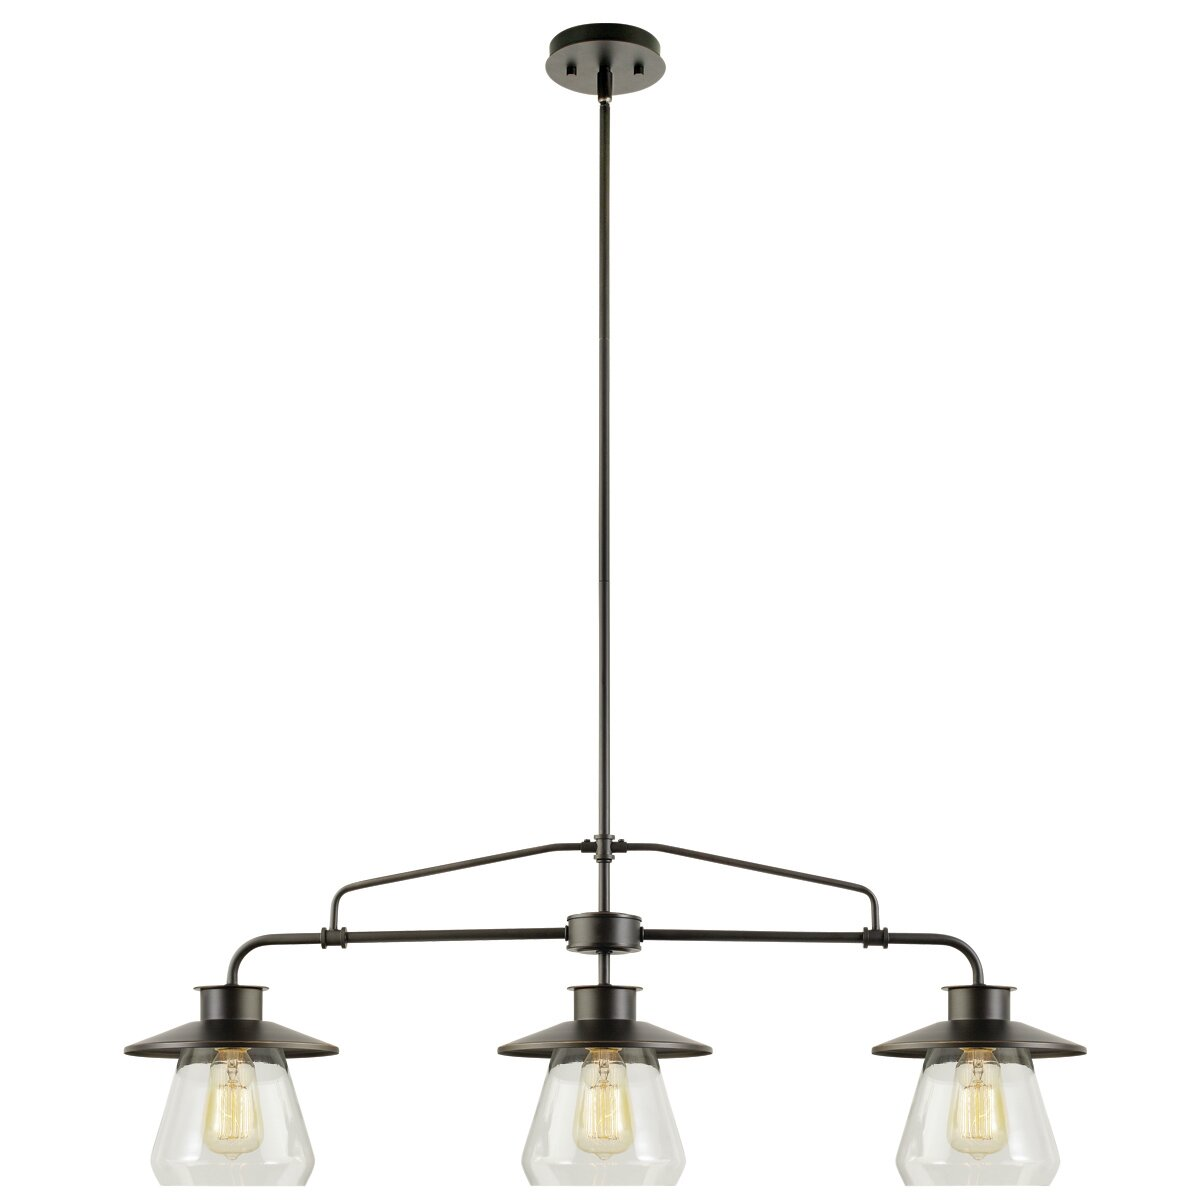 Bjvb Three Vintage Industrial Wood Pendant Lamp Bedroom: Globe Electric Company Moyet 3 Light Kitchen Island